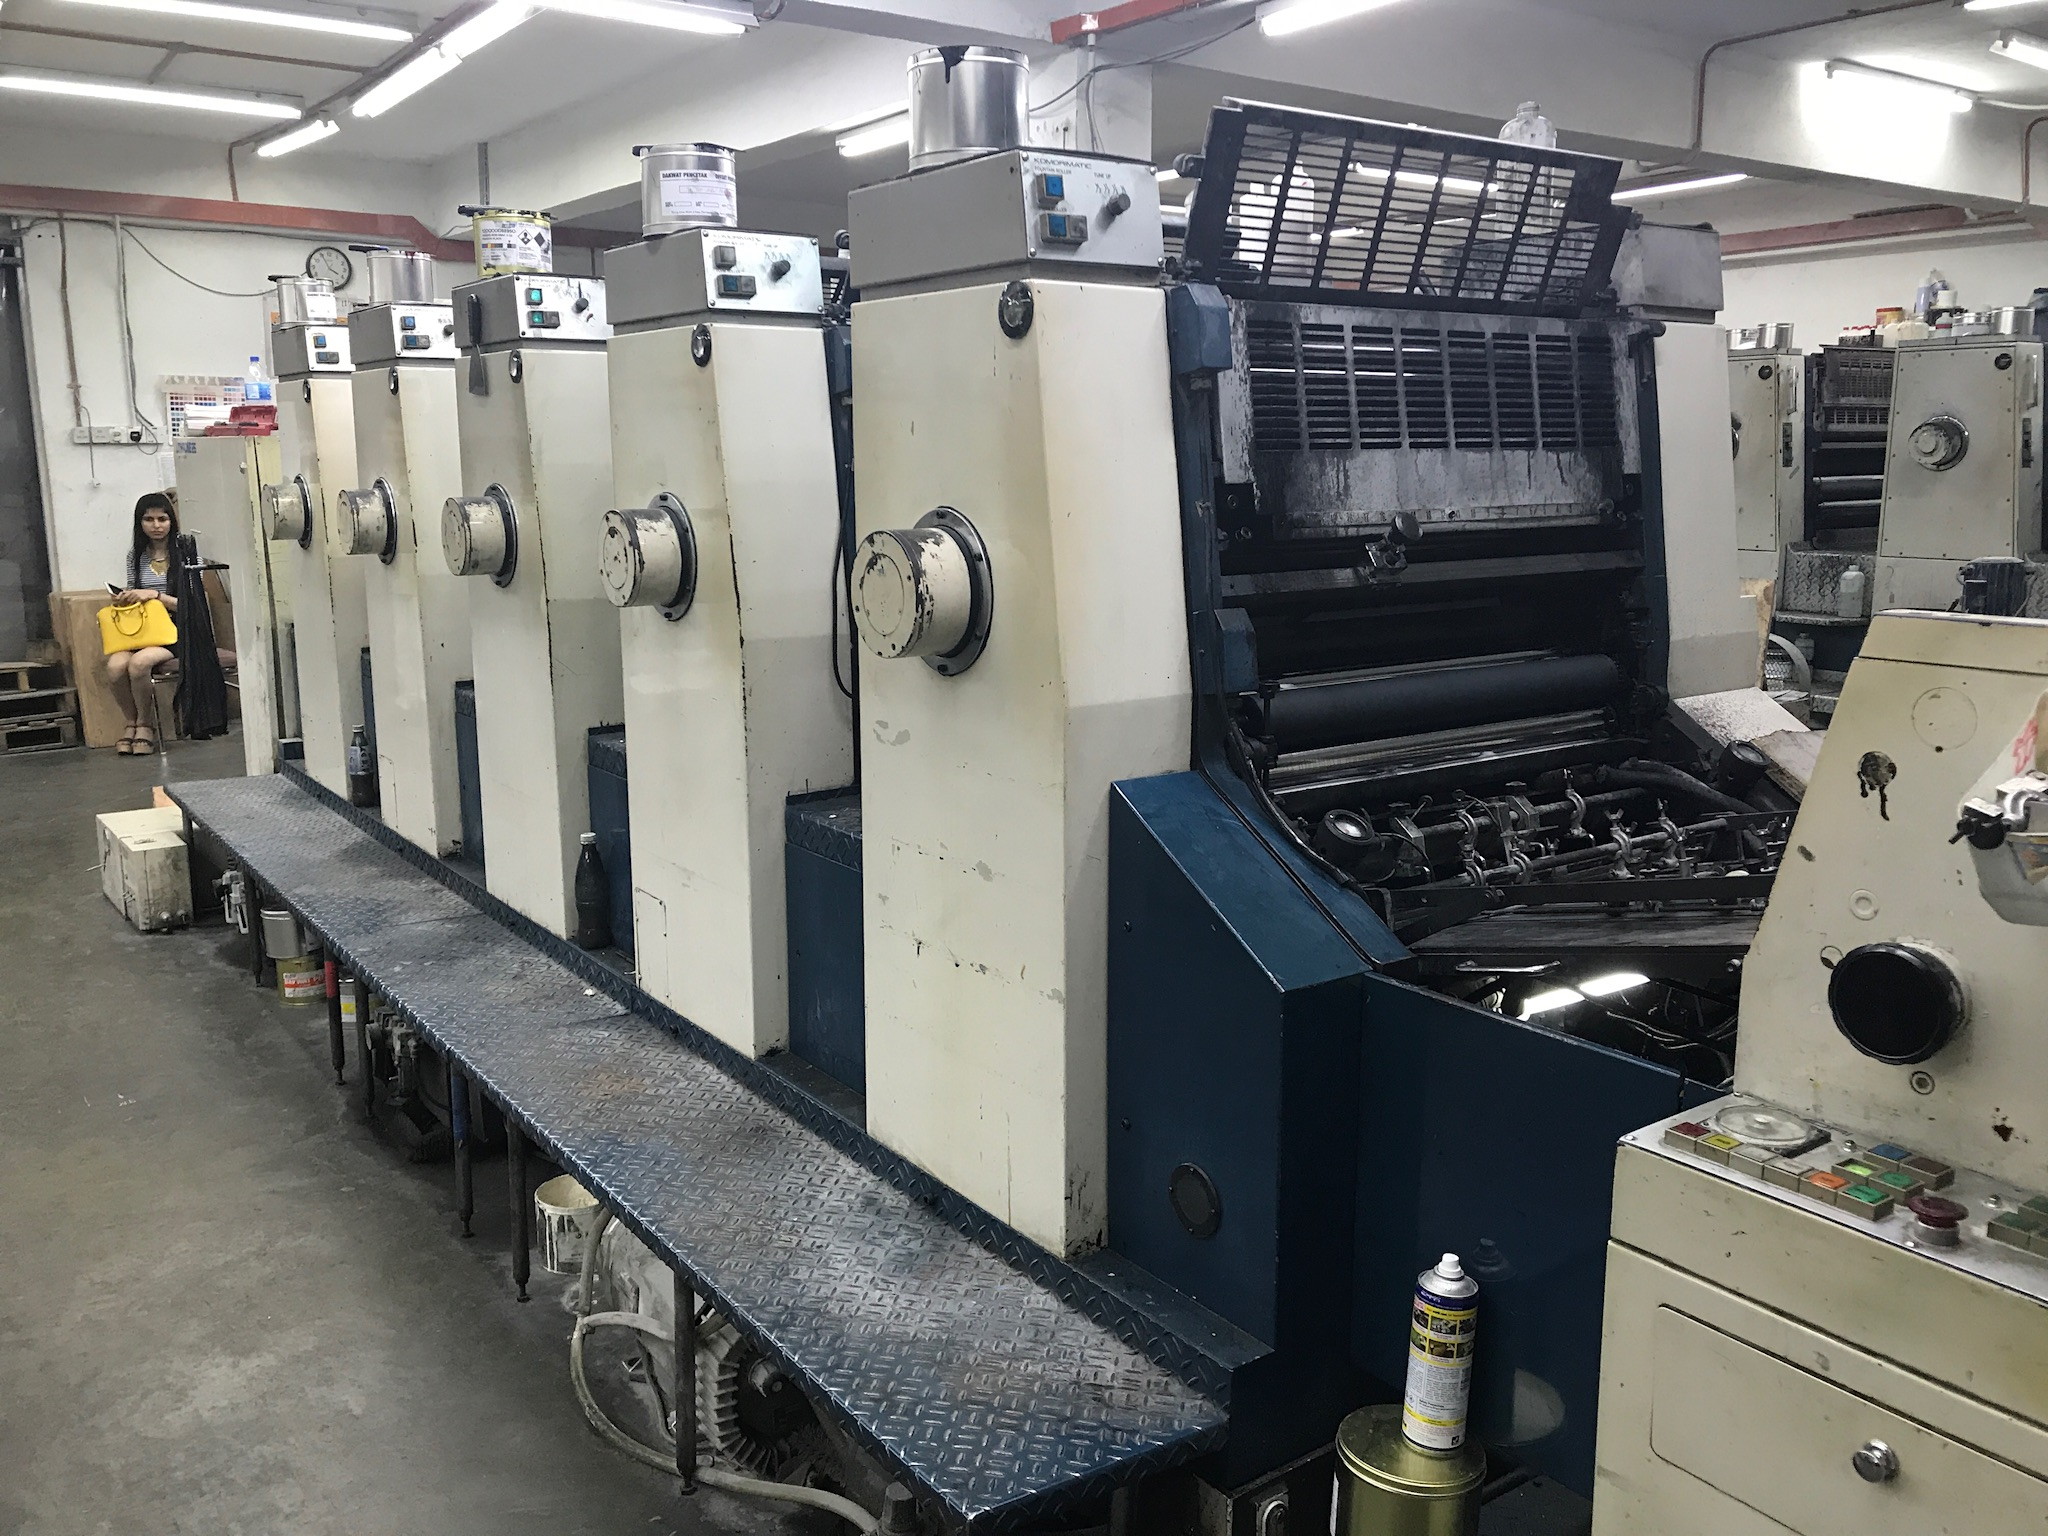 Five Colour Offset Printing Machine Komori L 532 Suppliers in Shivpuri